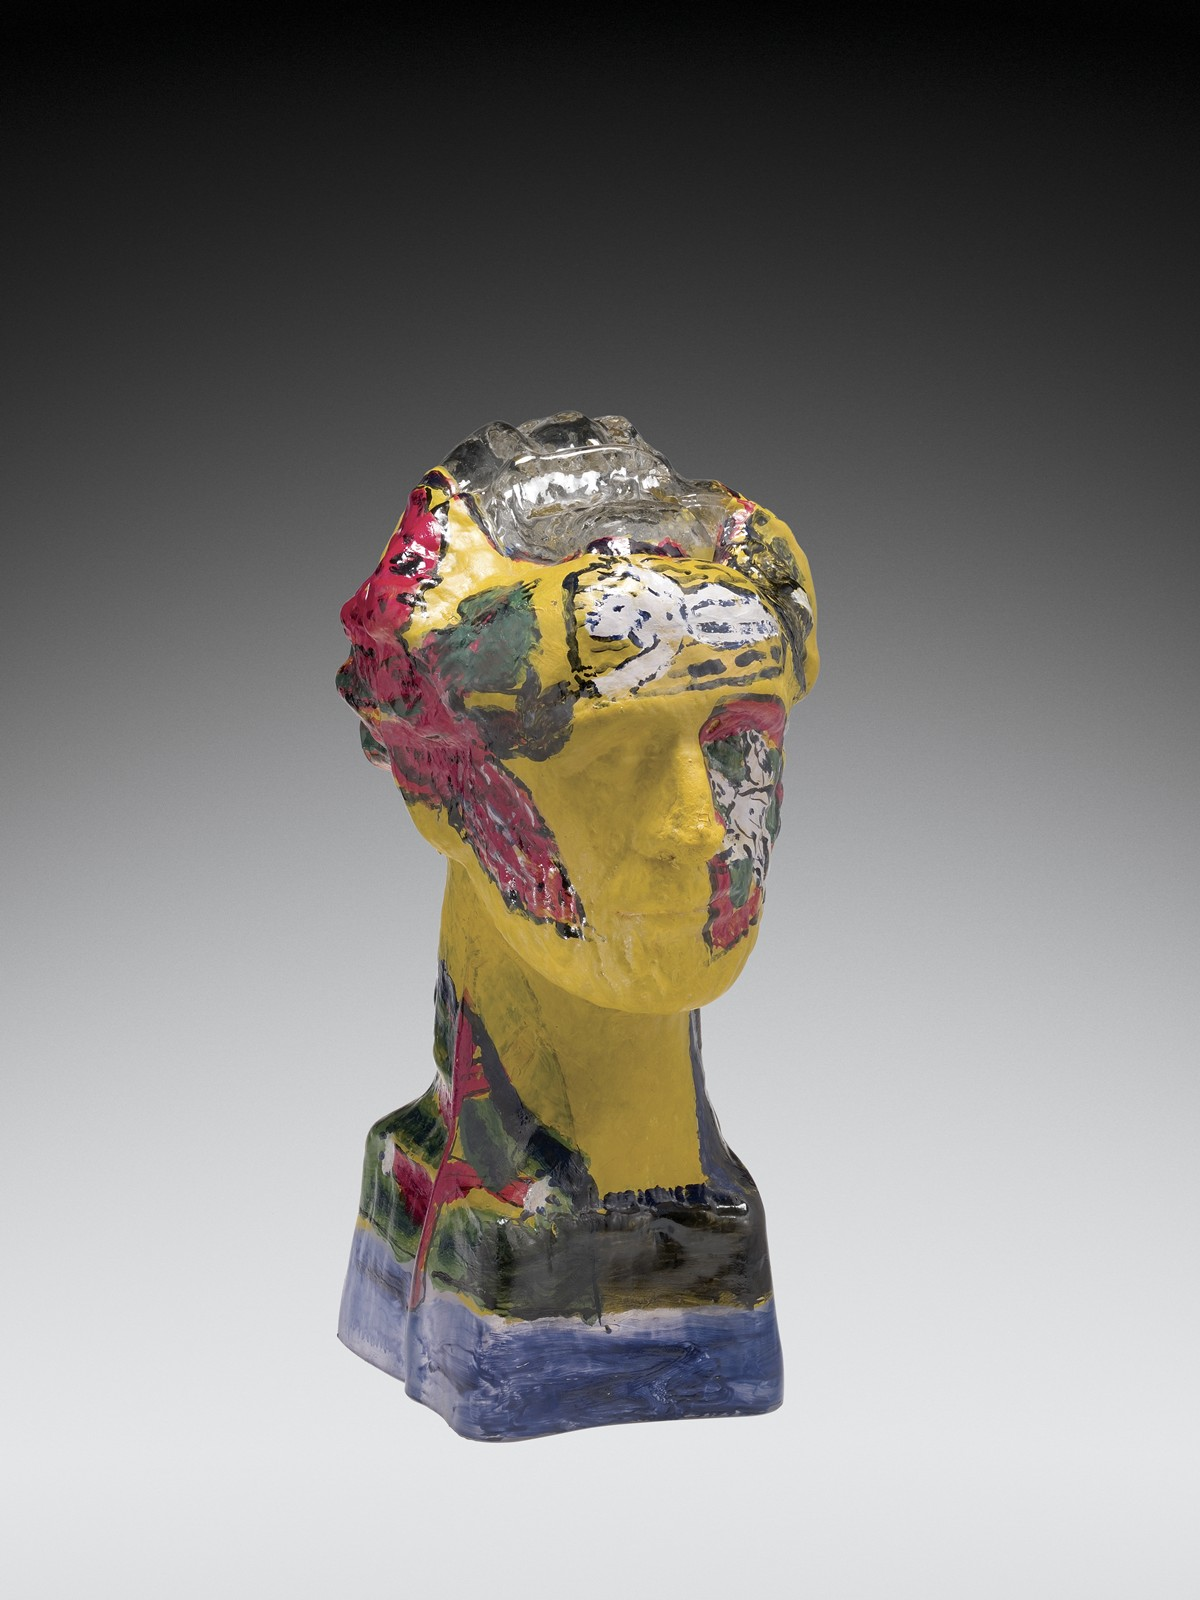 Self-Portrait, Germany, Frauenau, 2002. Mold-blown glass, enameled. Overall H: 49 cm, W: 23 cm, Diam: 30 cm (2008.3.27).